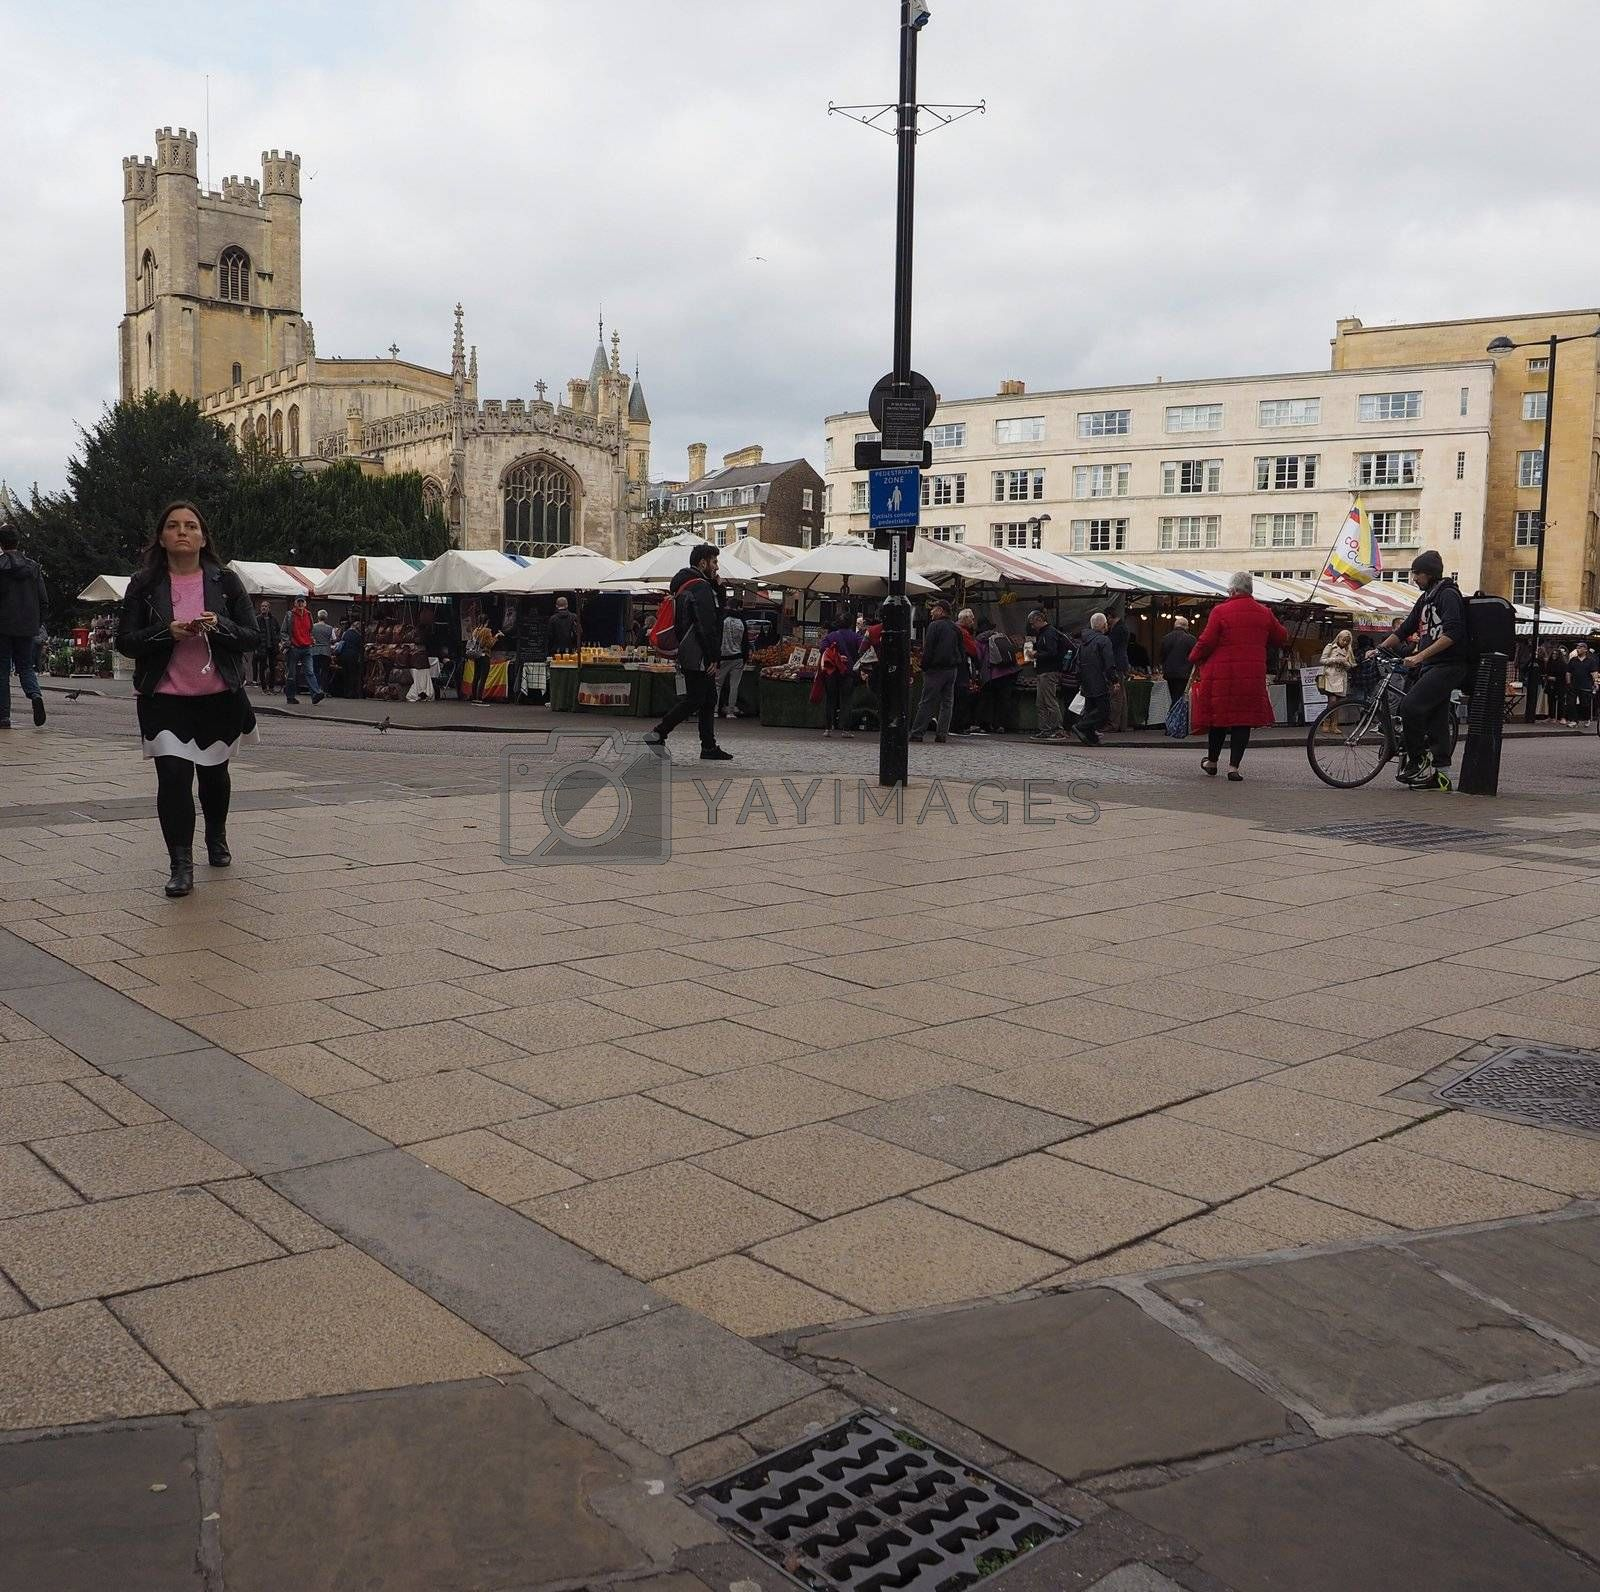 CAMBRIDGE, UK - CIRCA OCTOBER 2018: People in the city centre